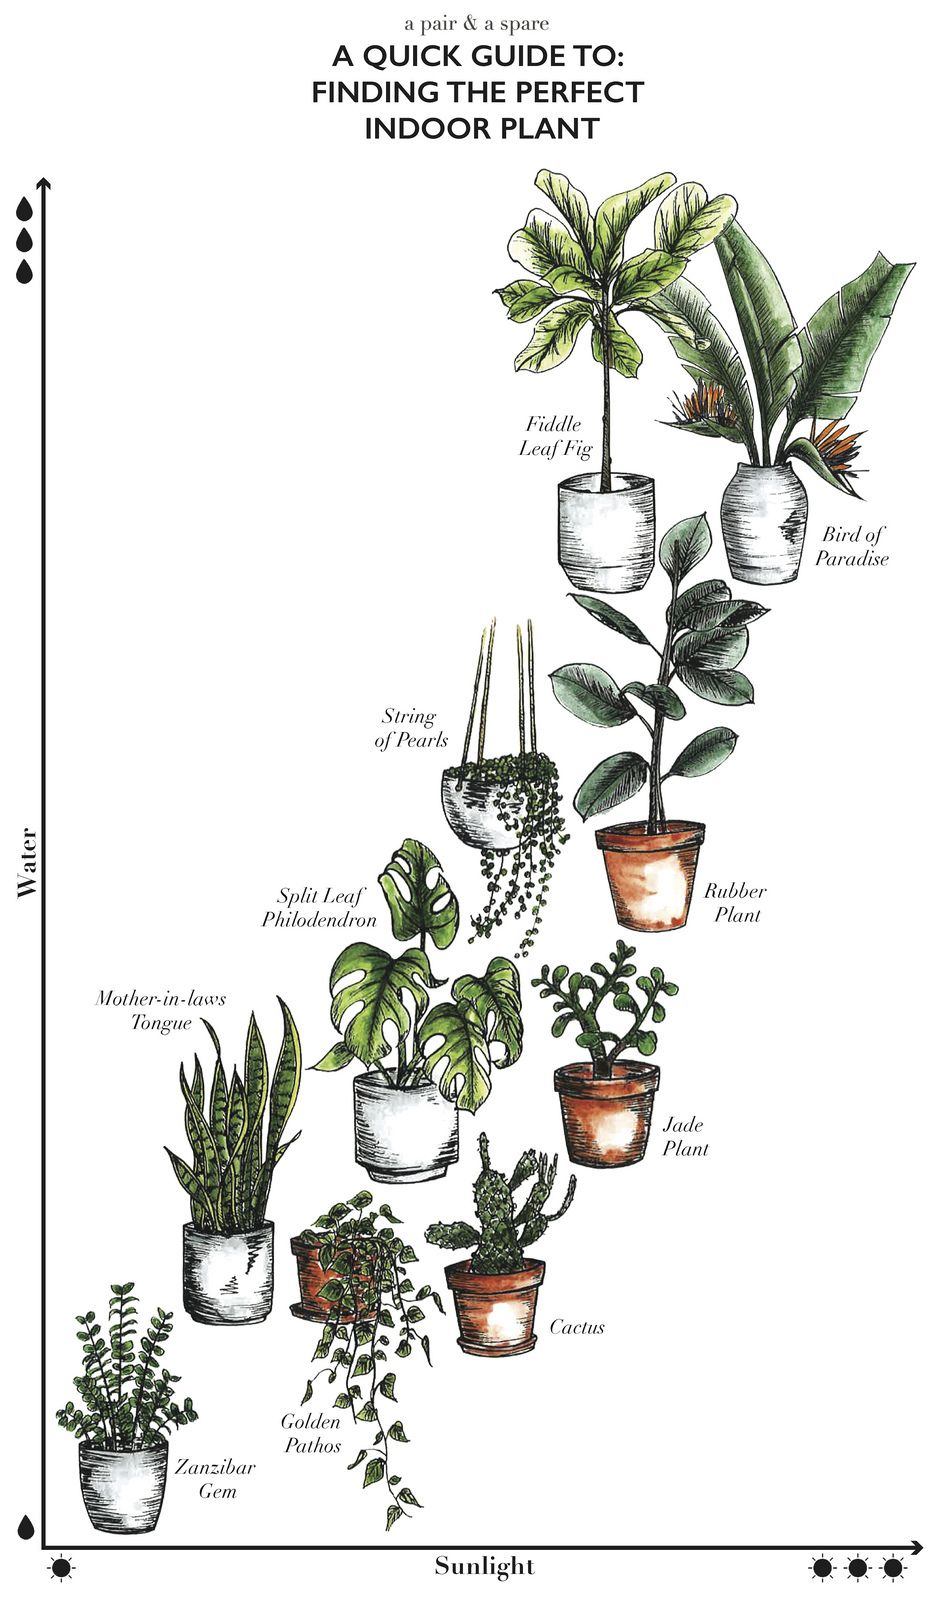 questions to help you choose the right indoor plants so they